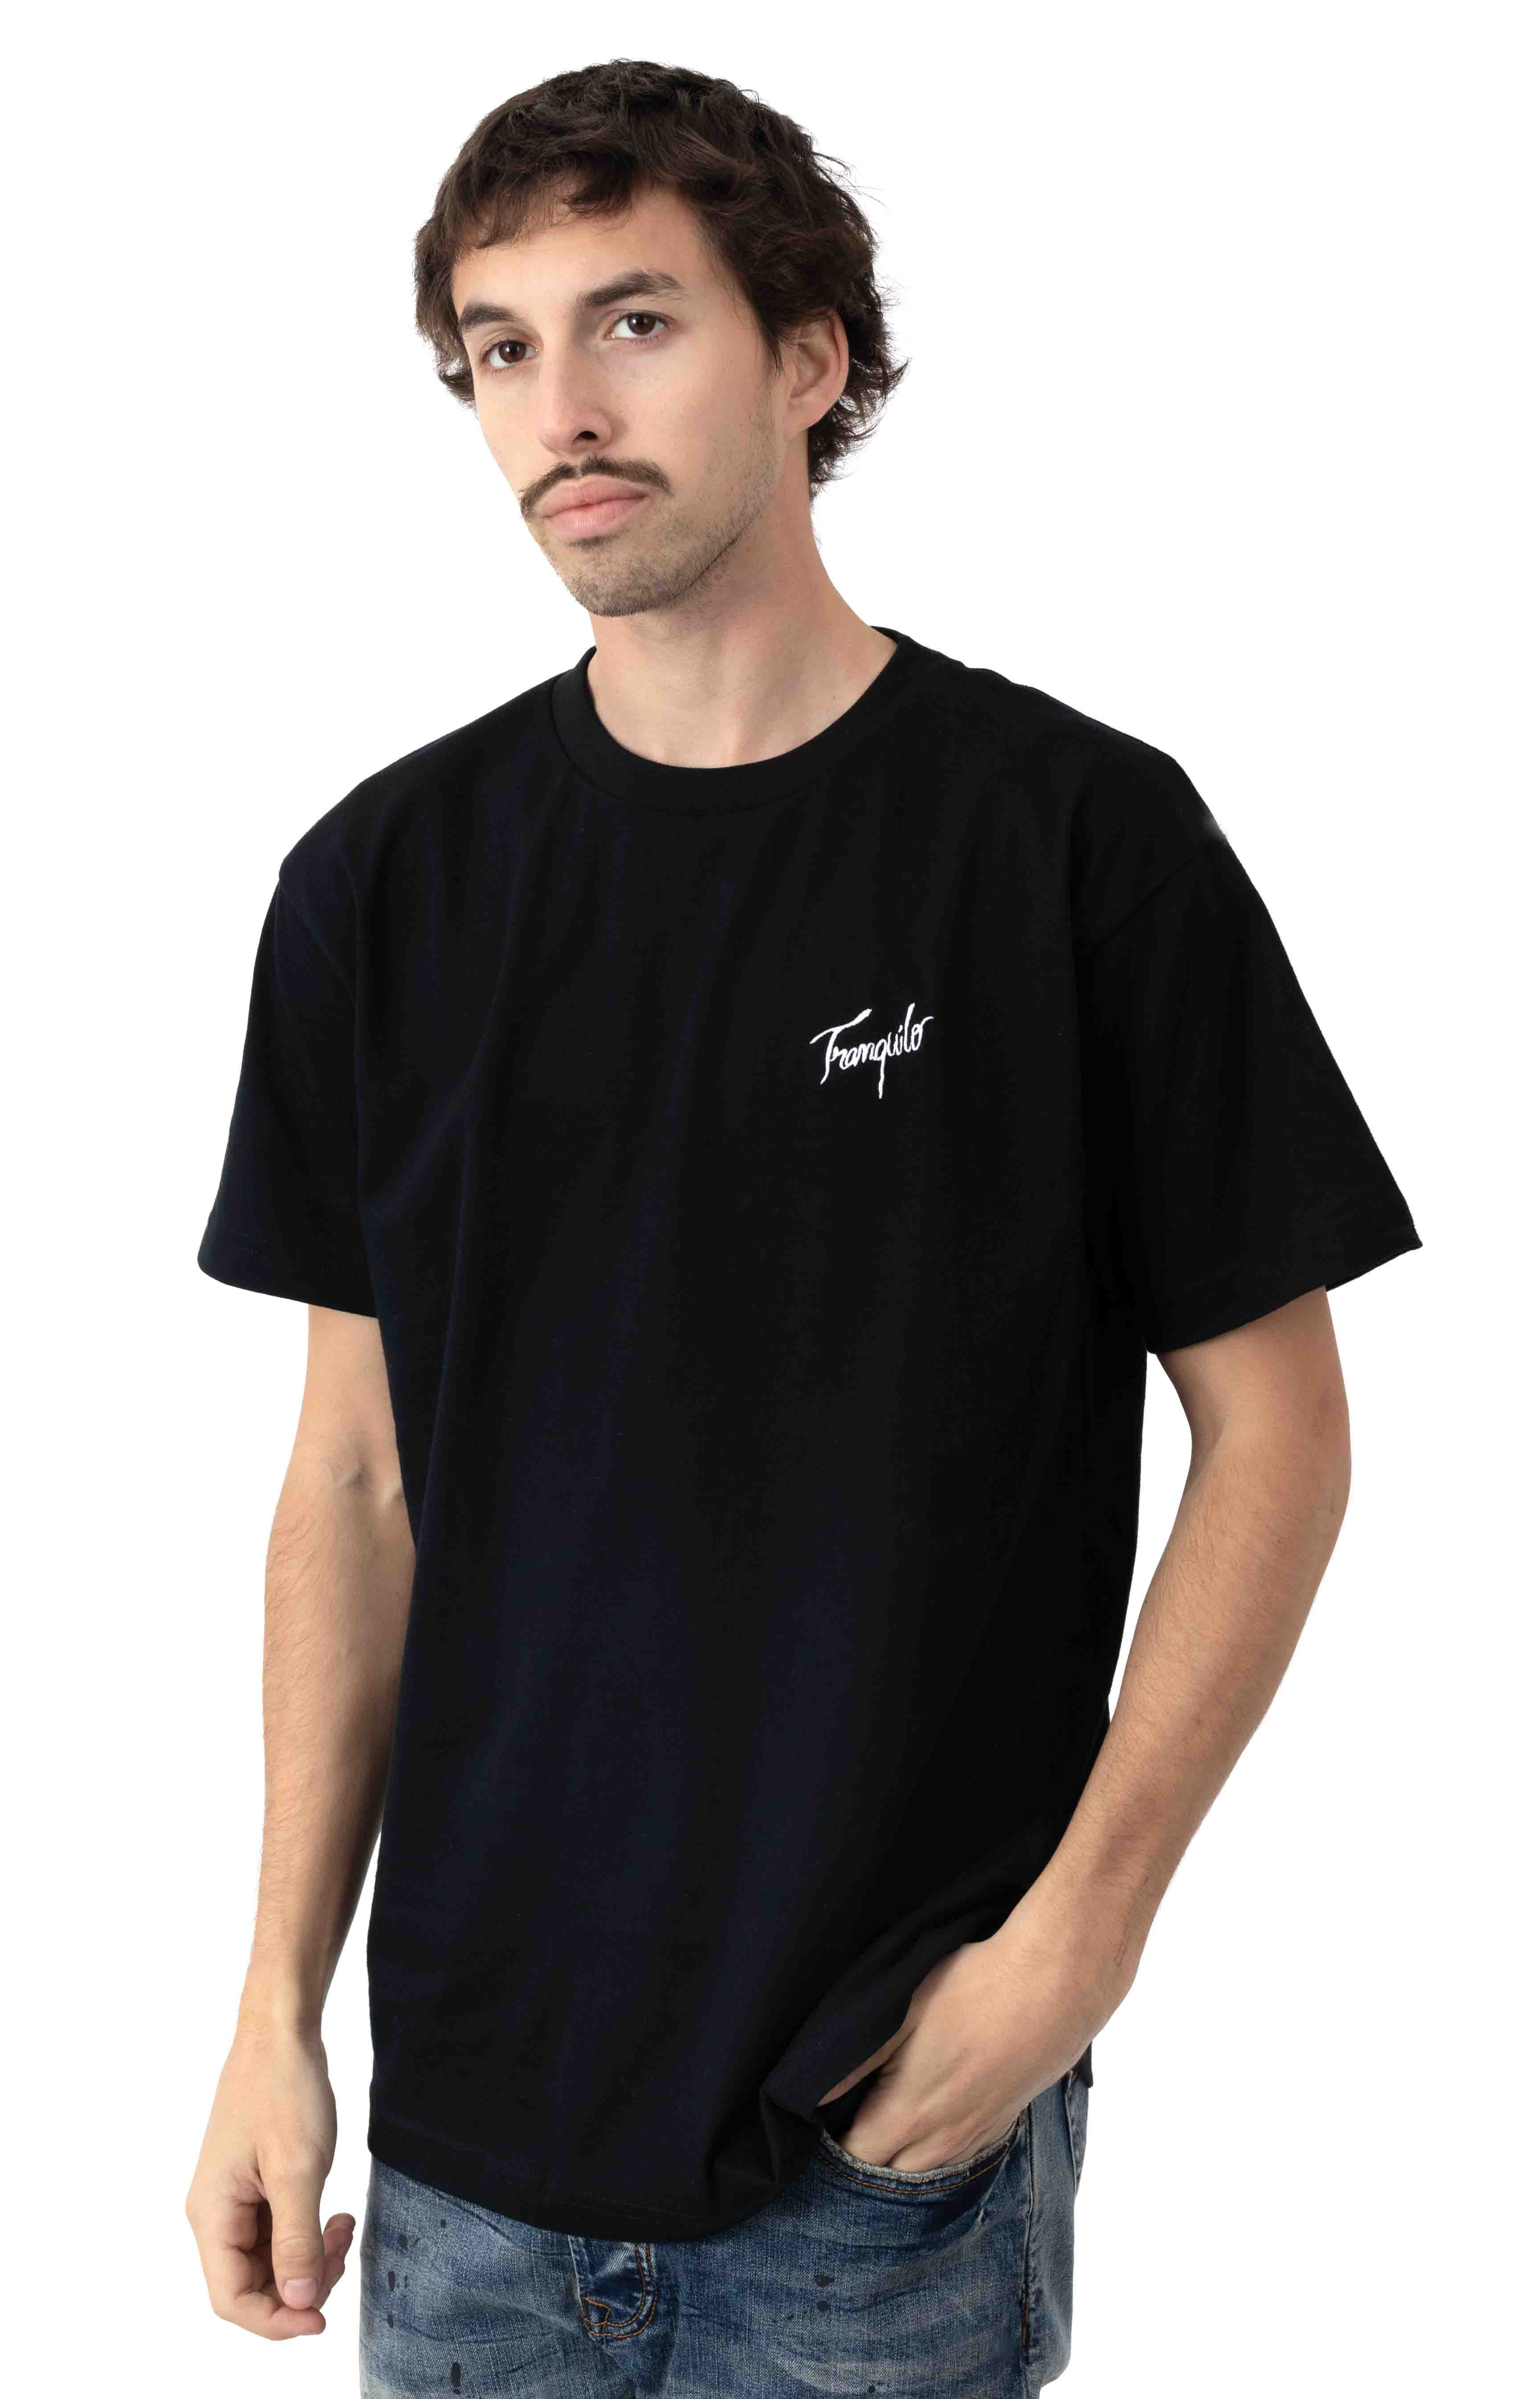 Tranquilo Embroidered T-Shirt - Black 2